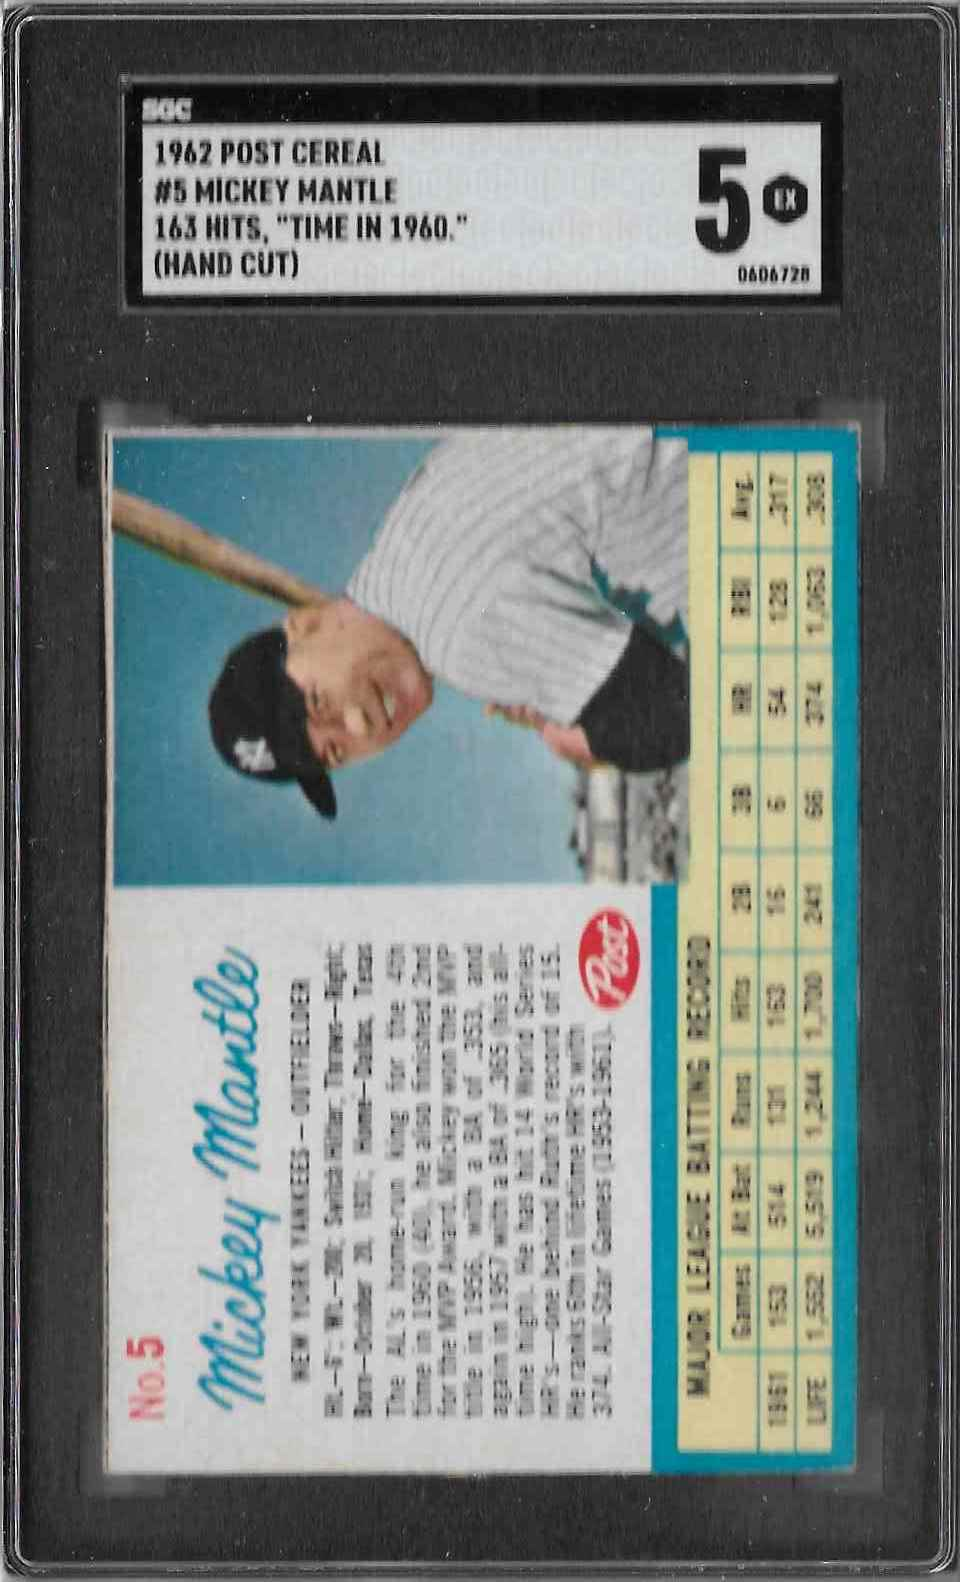 1962 Post Cereal Mickey Mantle #5 card front image